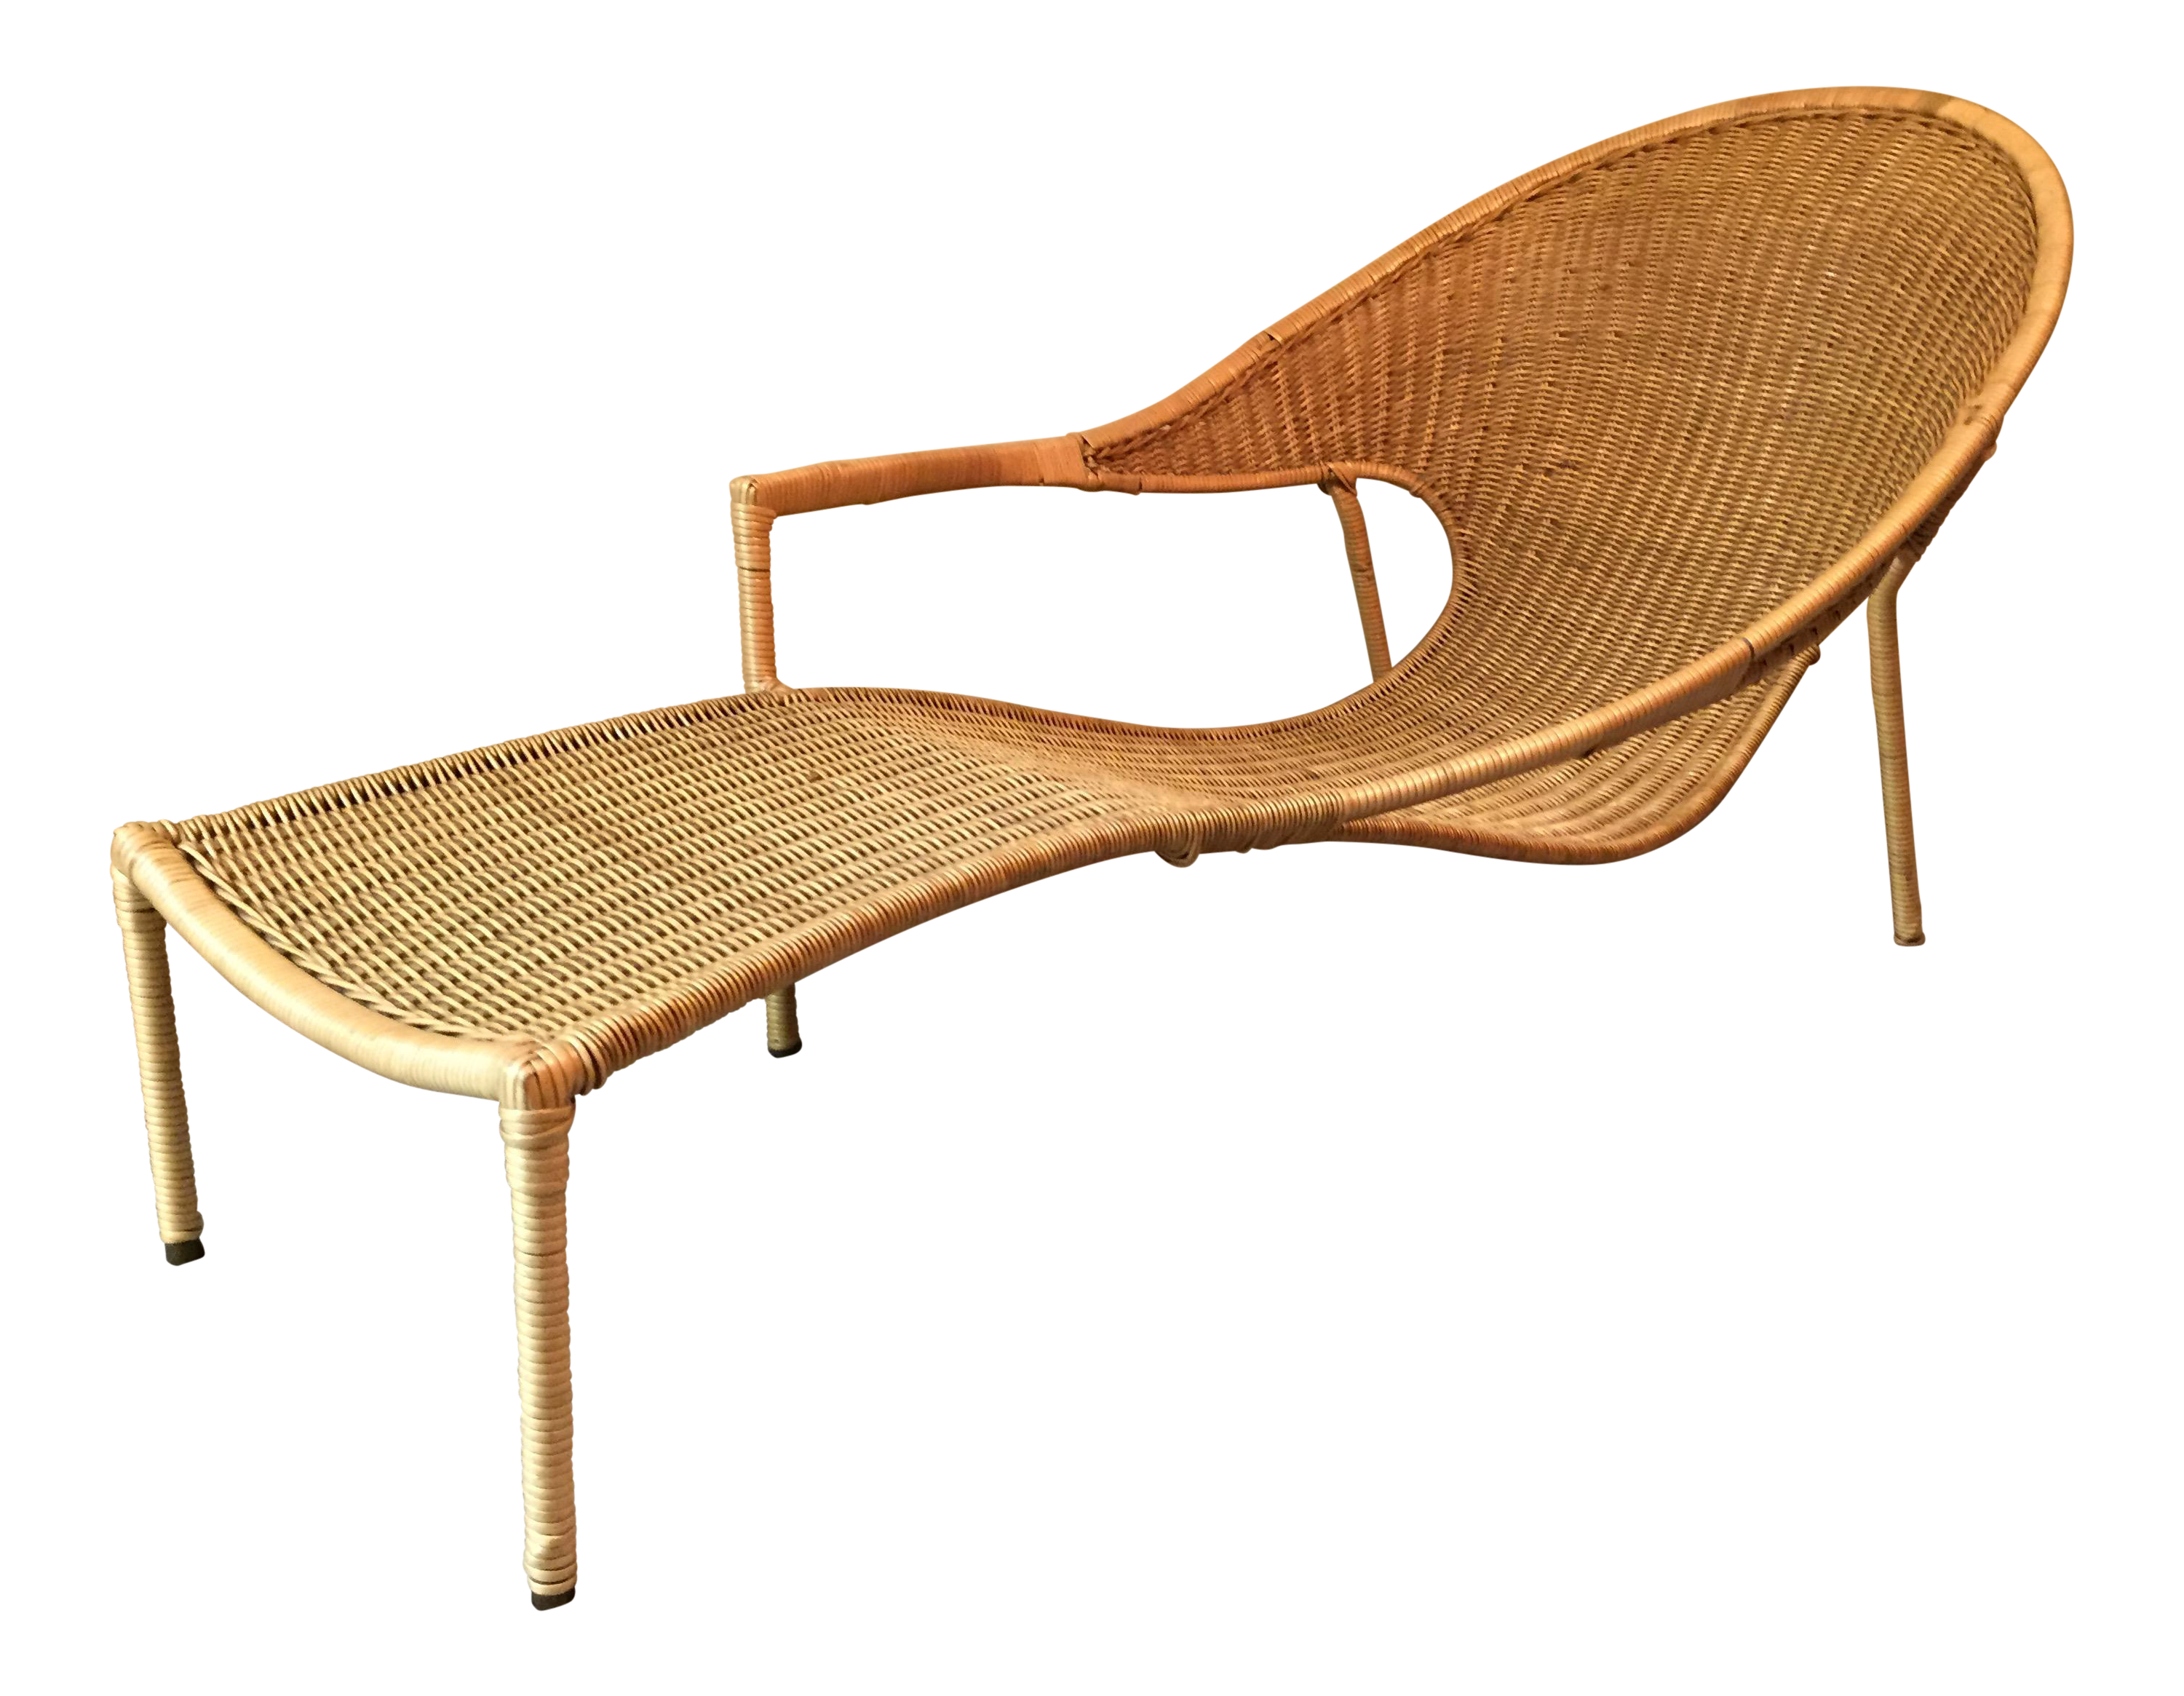 Awesome 1950S Scarce Francis Mair Mid Century Modern Rattan Low Slung Lounge Chair Andrewgaddart Wooden Chair Designs For Living Room Andrewgaddartcom